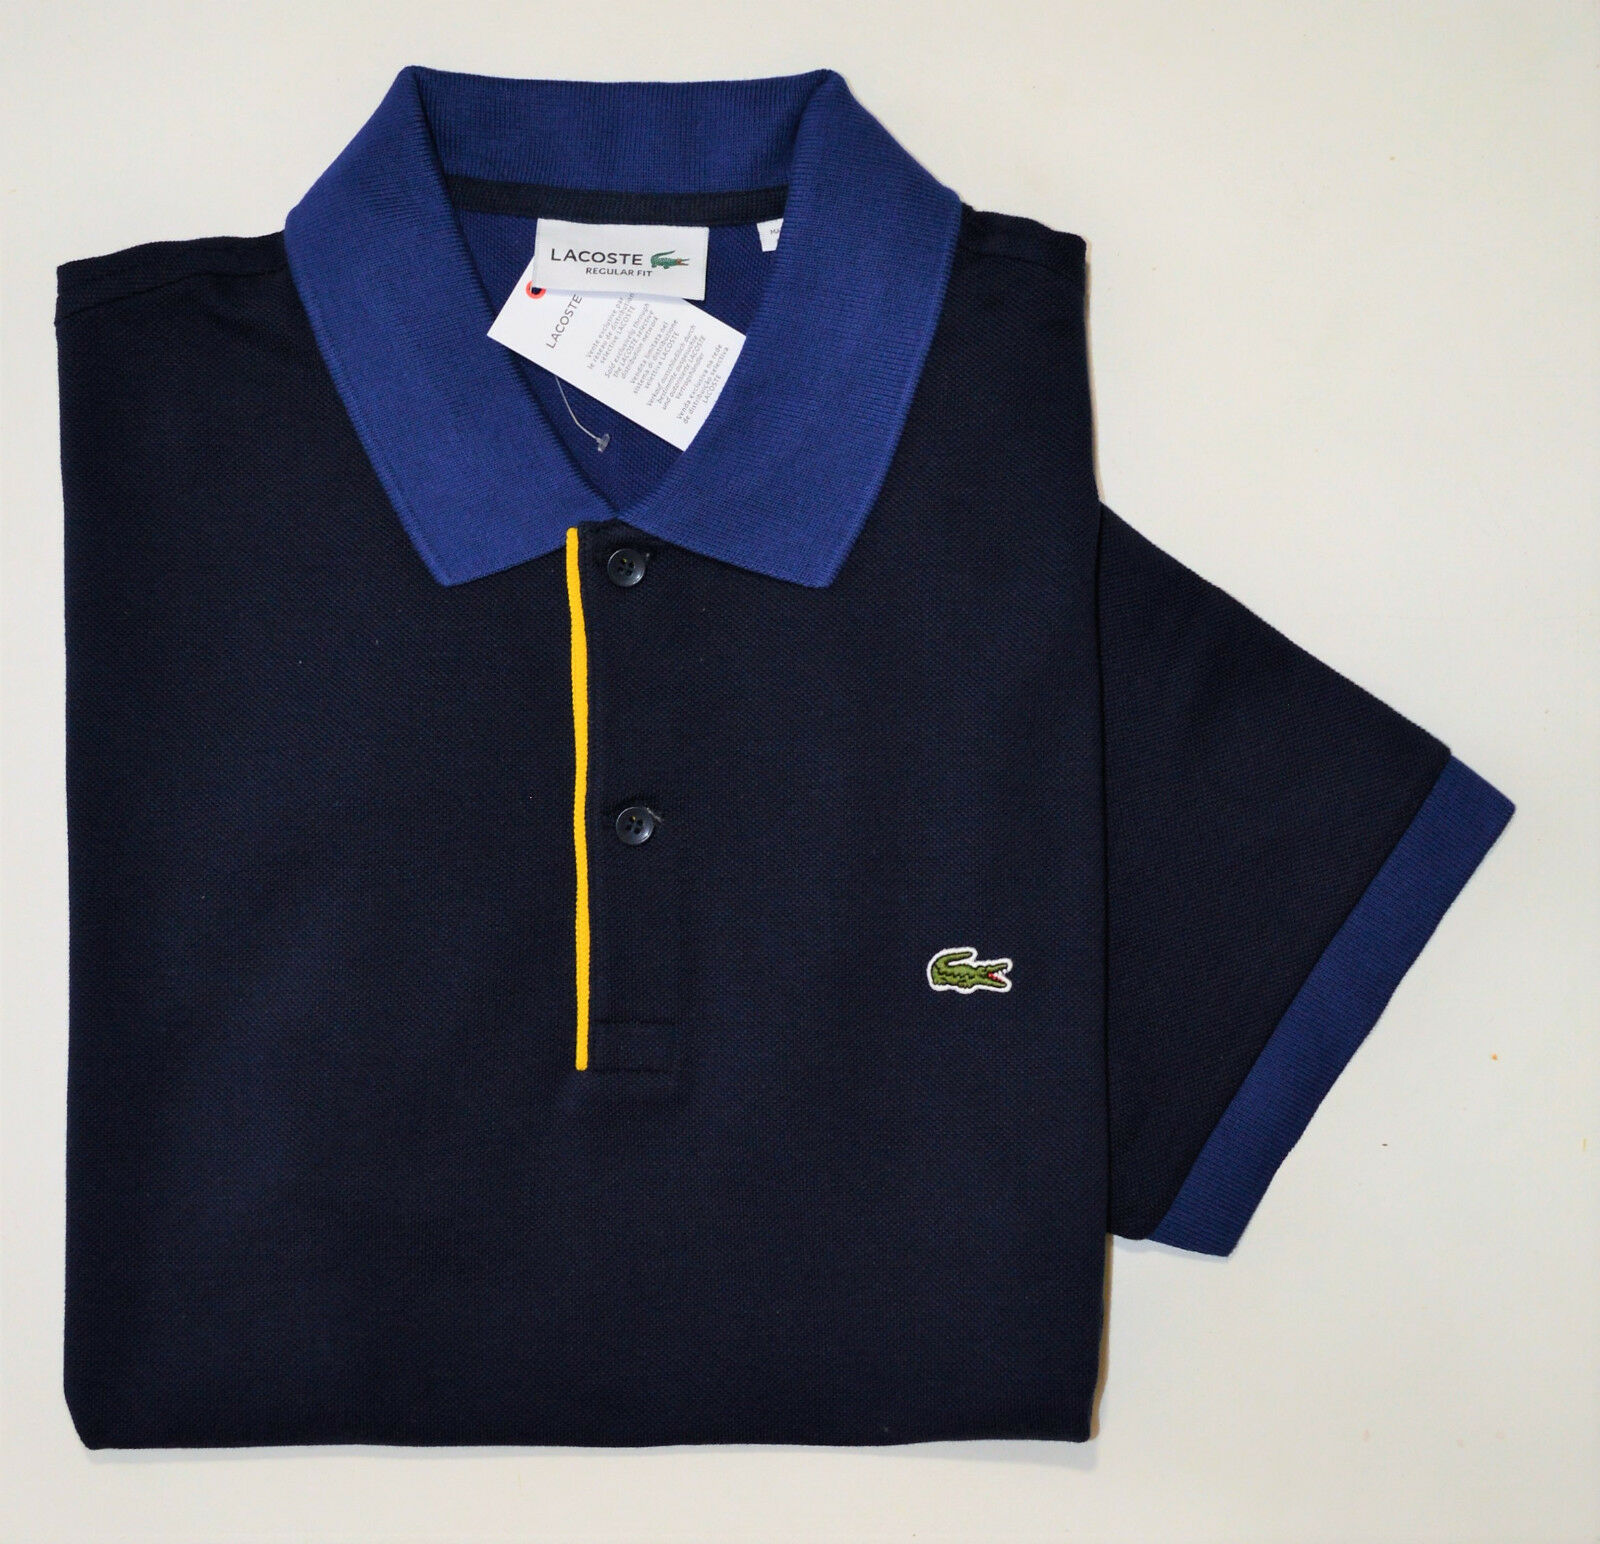 NWT LACOSTE men's POLO Shirt, size FR 3 - S Small, bluee, 100% Cotton